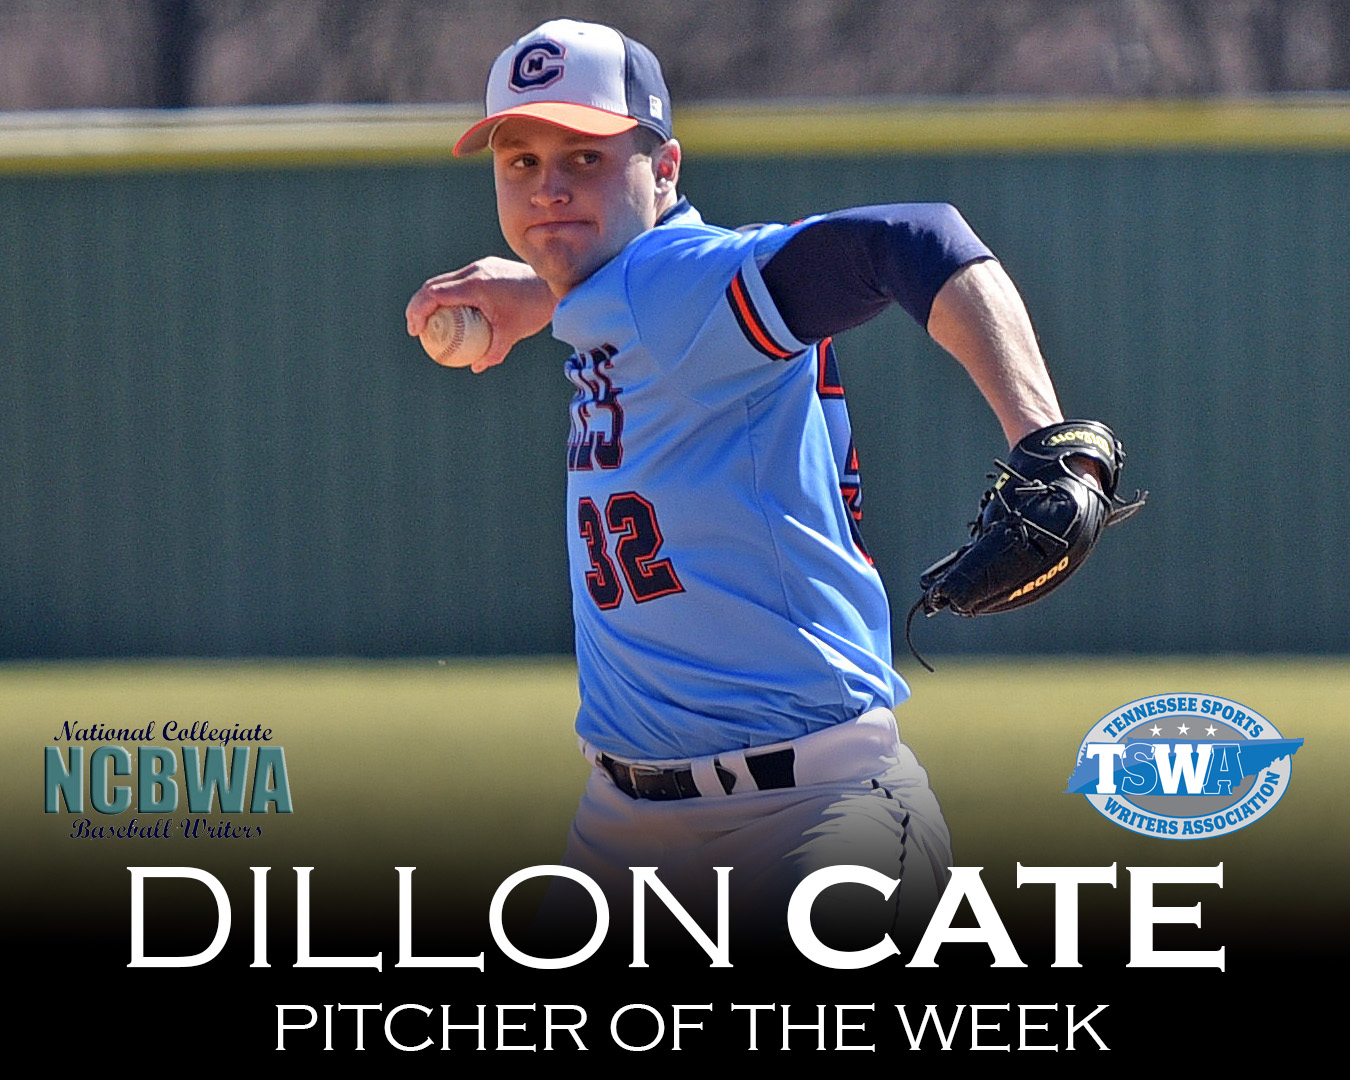 Cate cleans up with NCBWA National Pitcher of the Week award